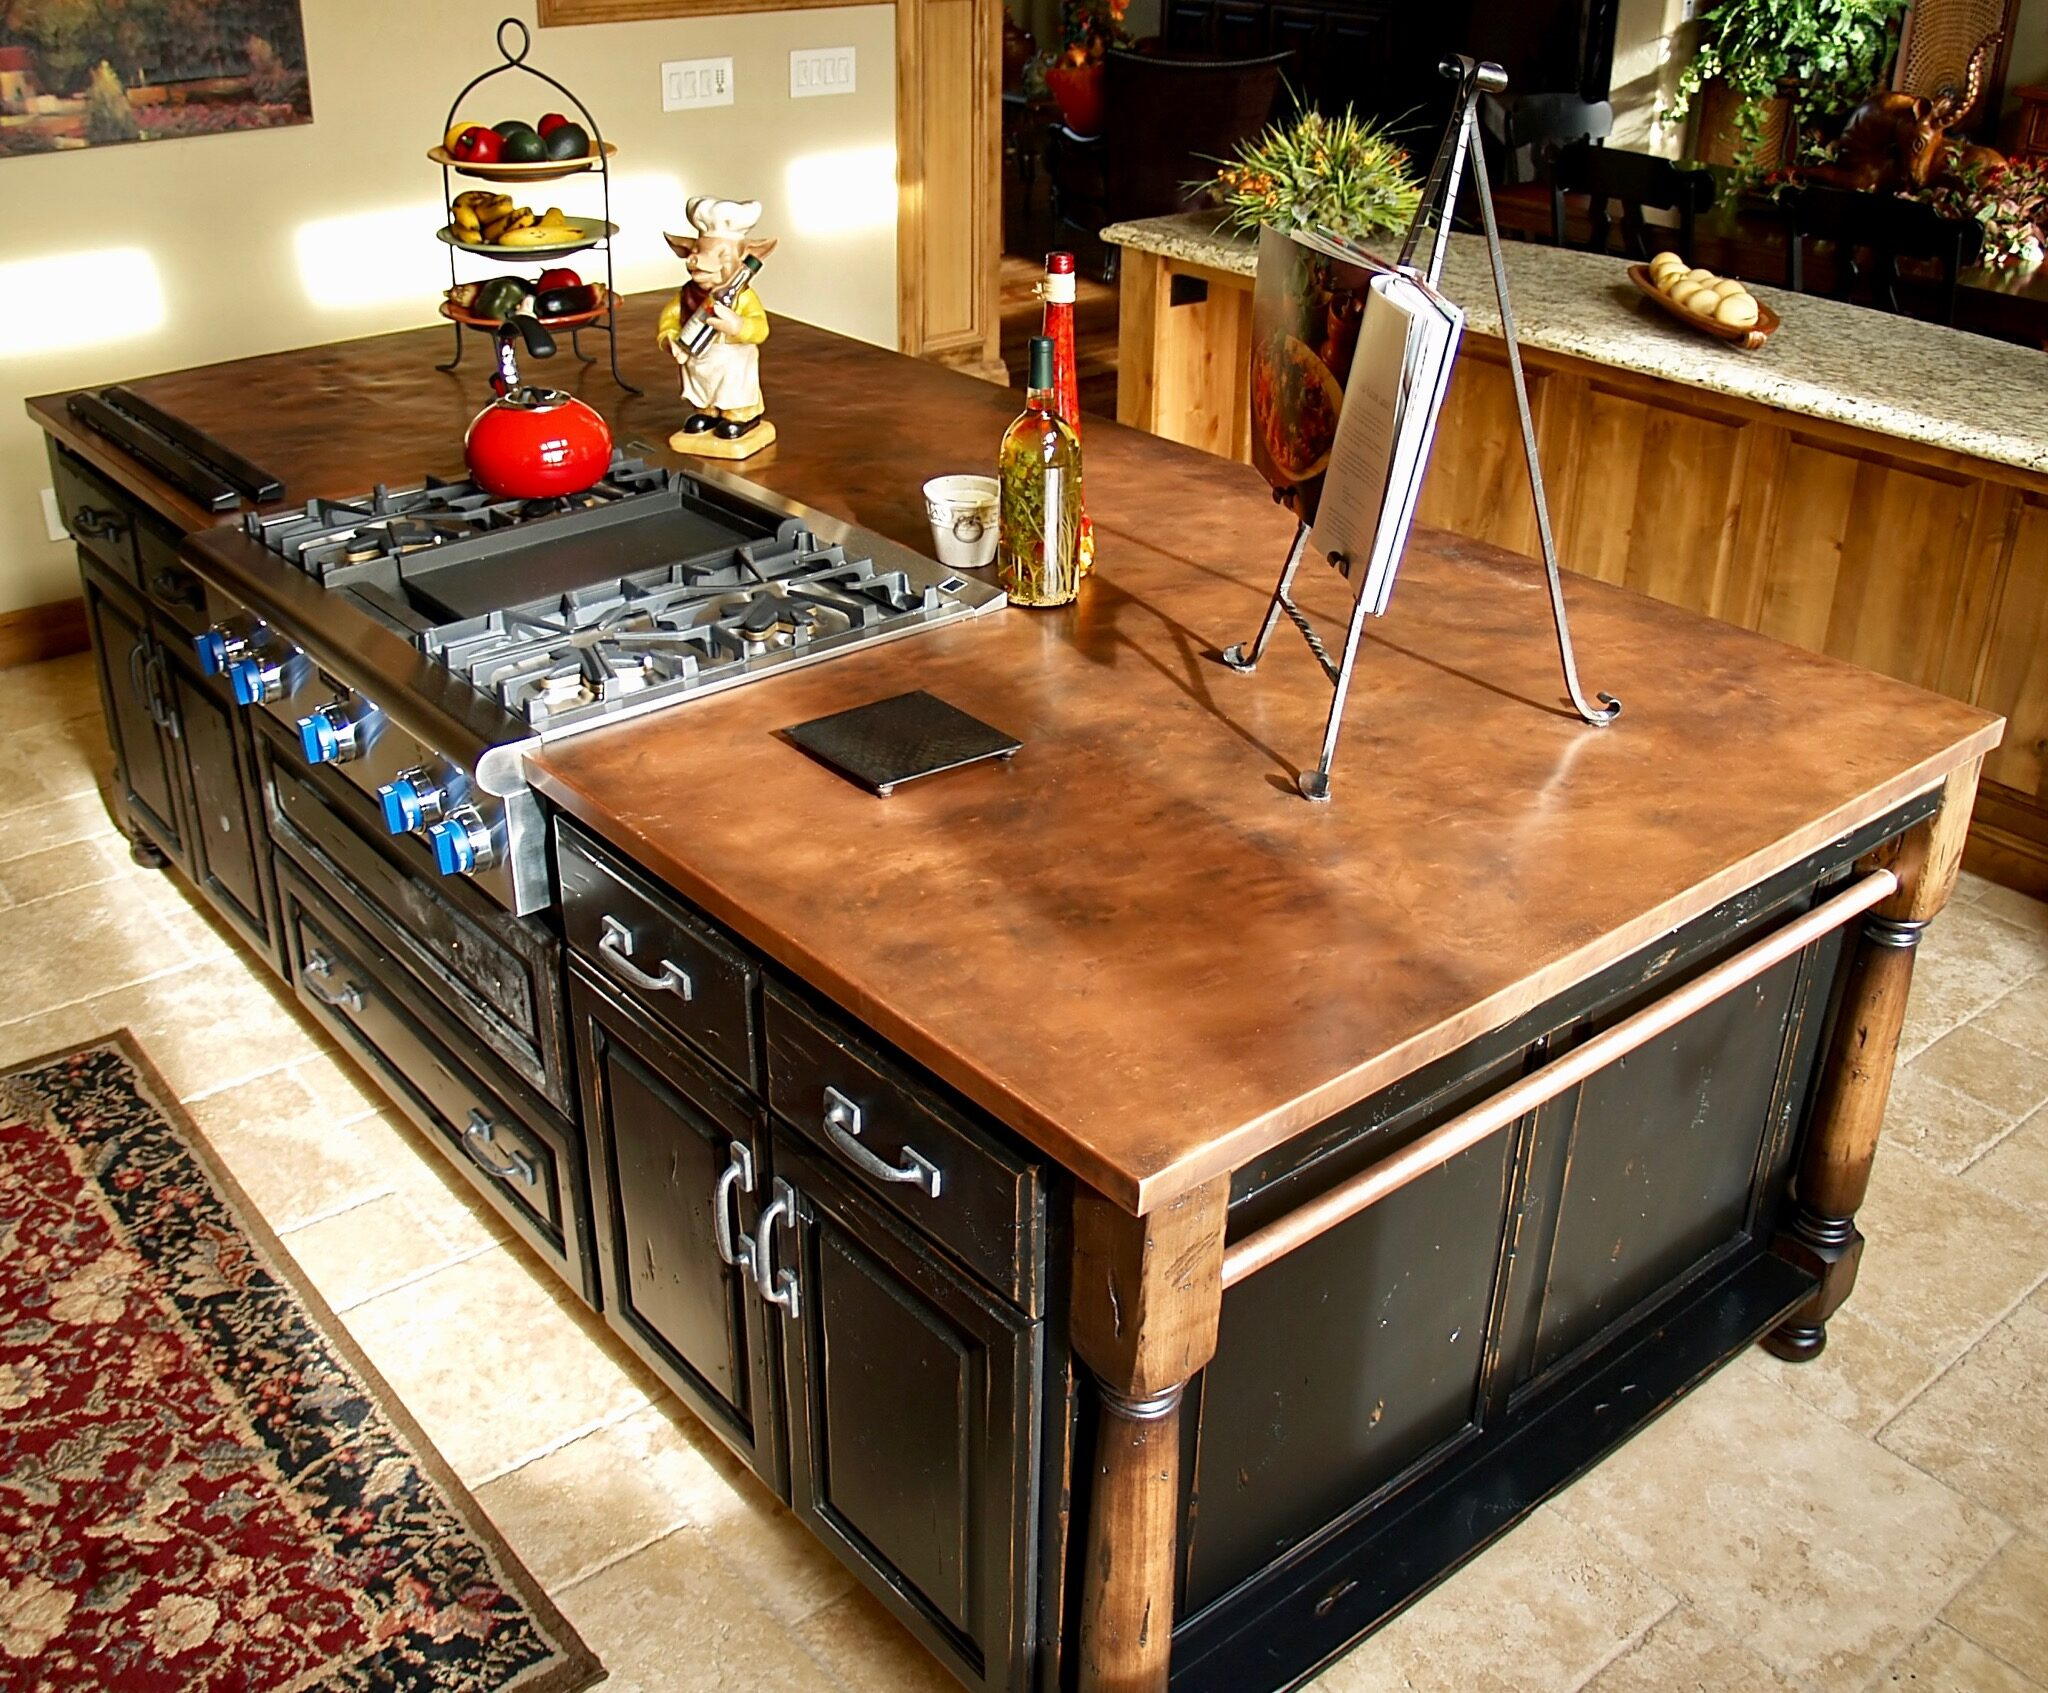 Copper countertop on island